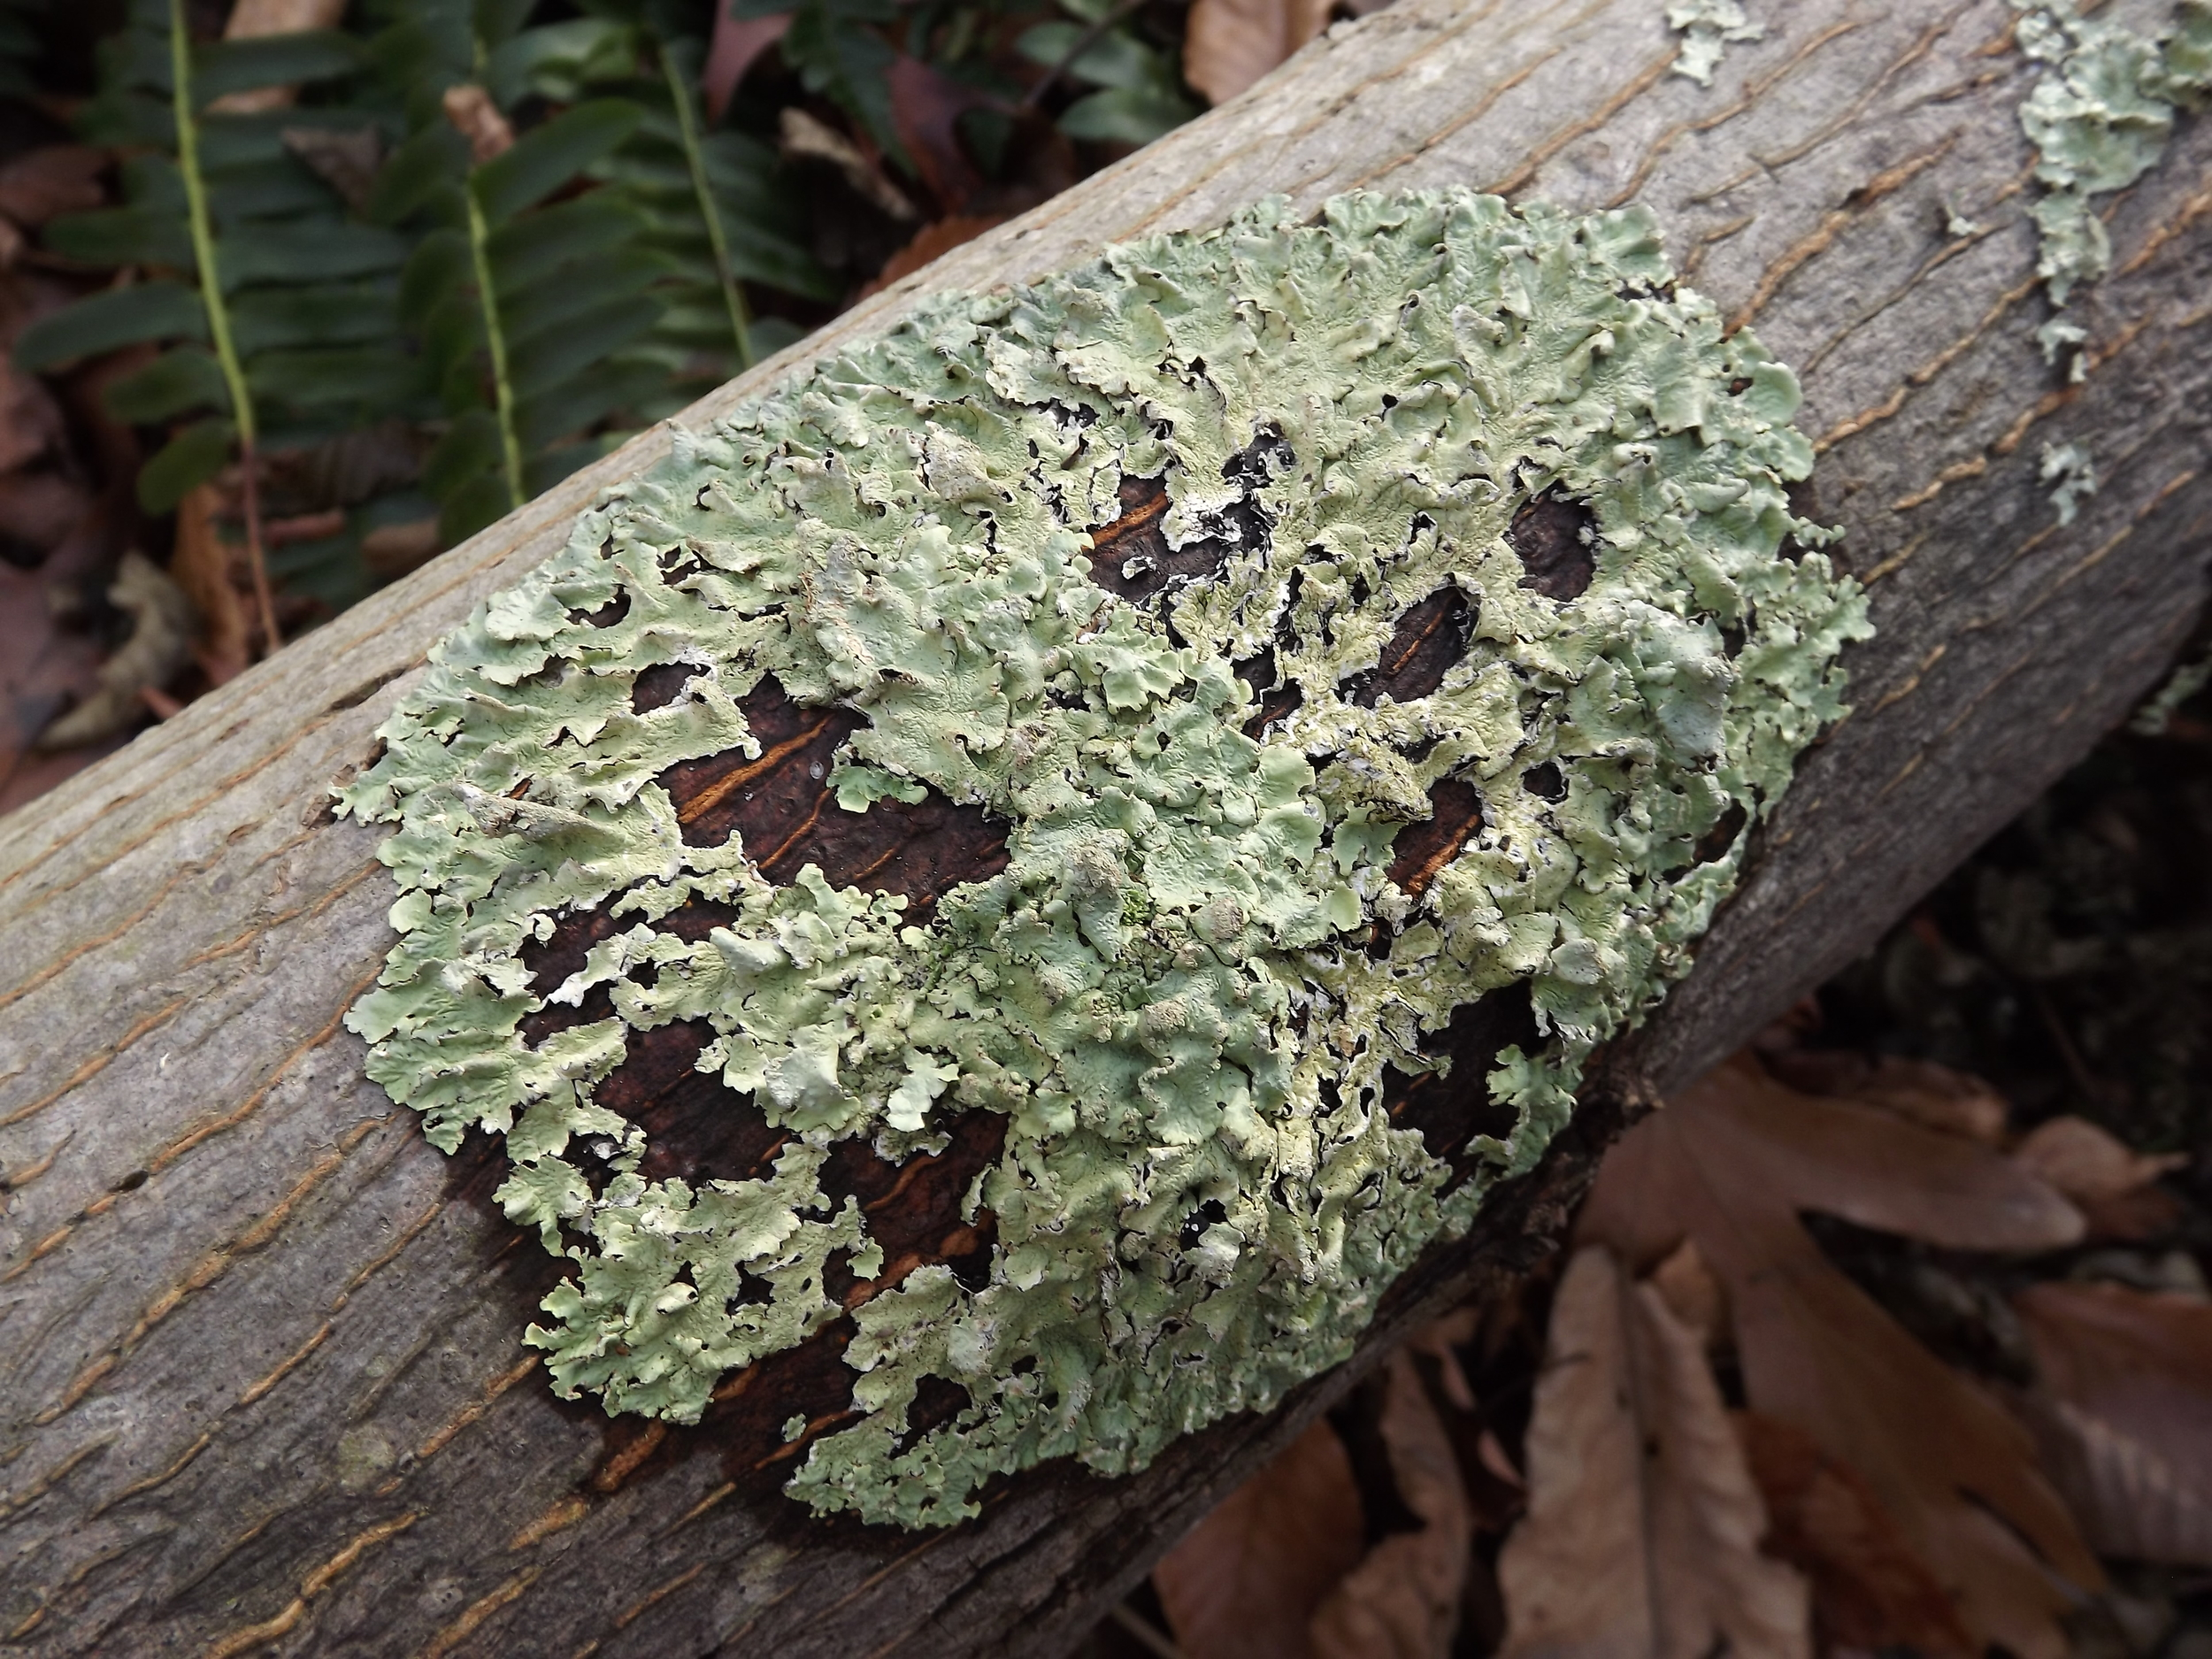 Common Greenshield Lichen ( Flavoparmelia caperata ) -  I first identified Common Greenshield Lichen a few years ago and ever since then I've been amazed by how much of it I see around the area.  I've found it on dead trees, rocks, and even living trees.